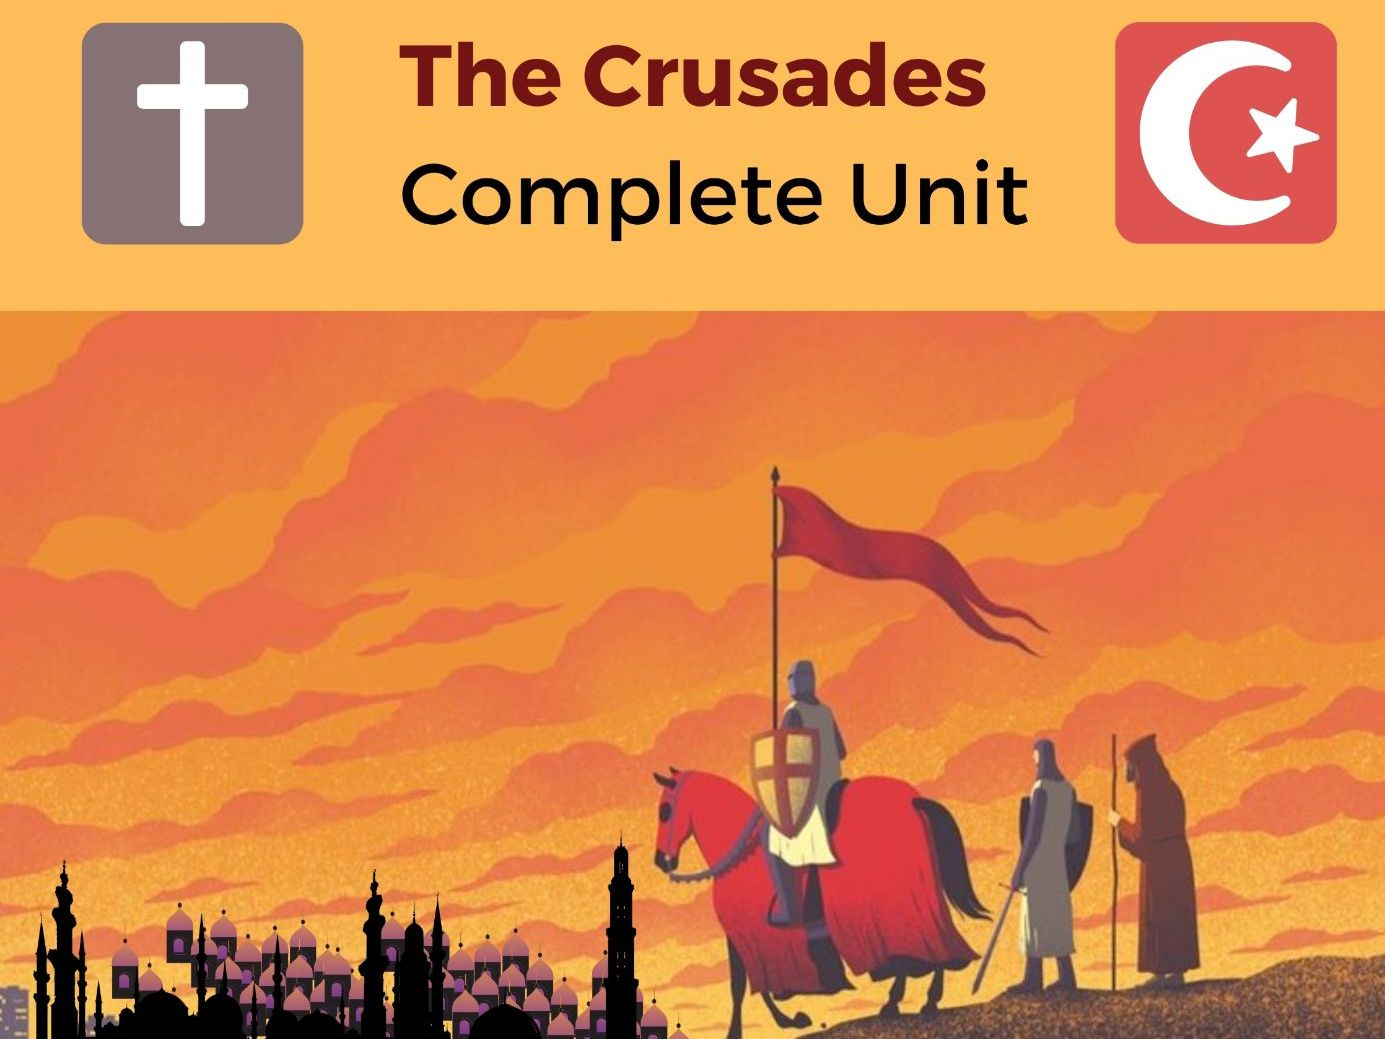 The Crusades - Complete Unit